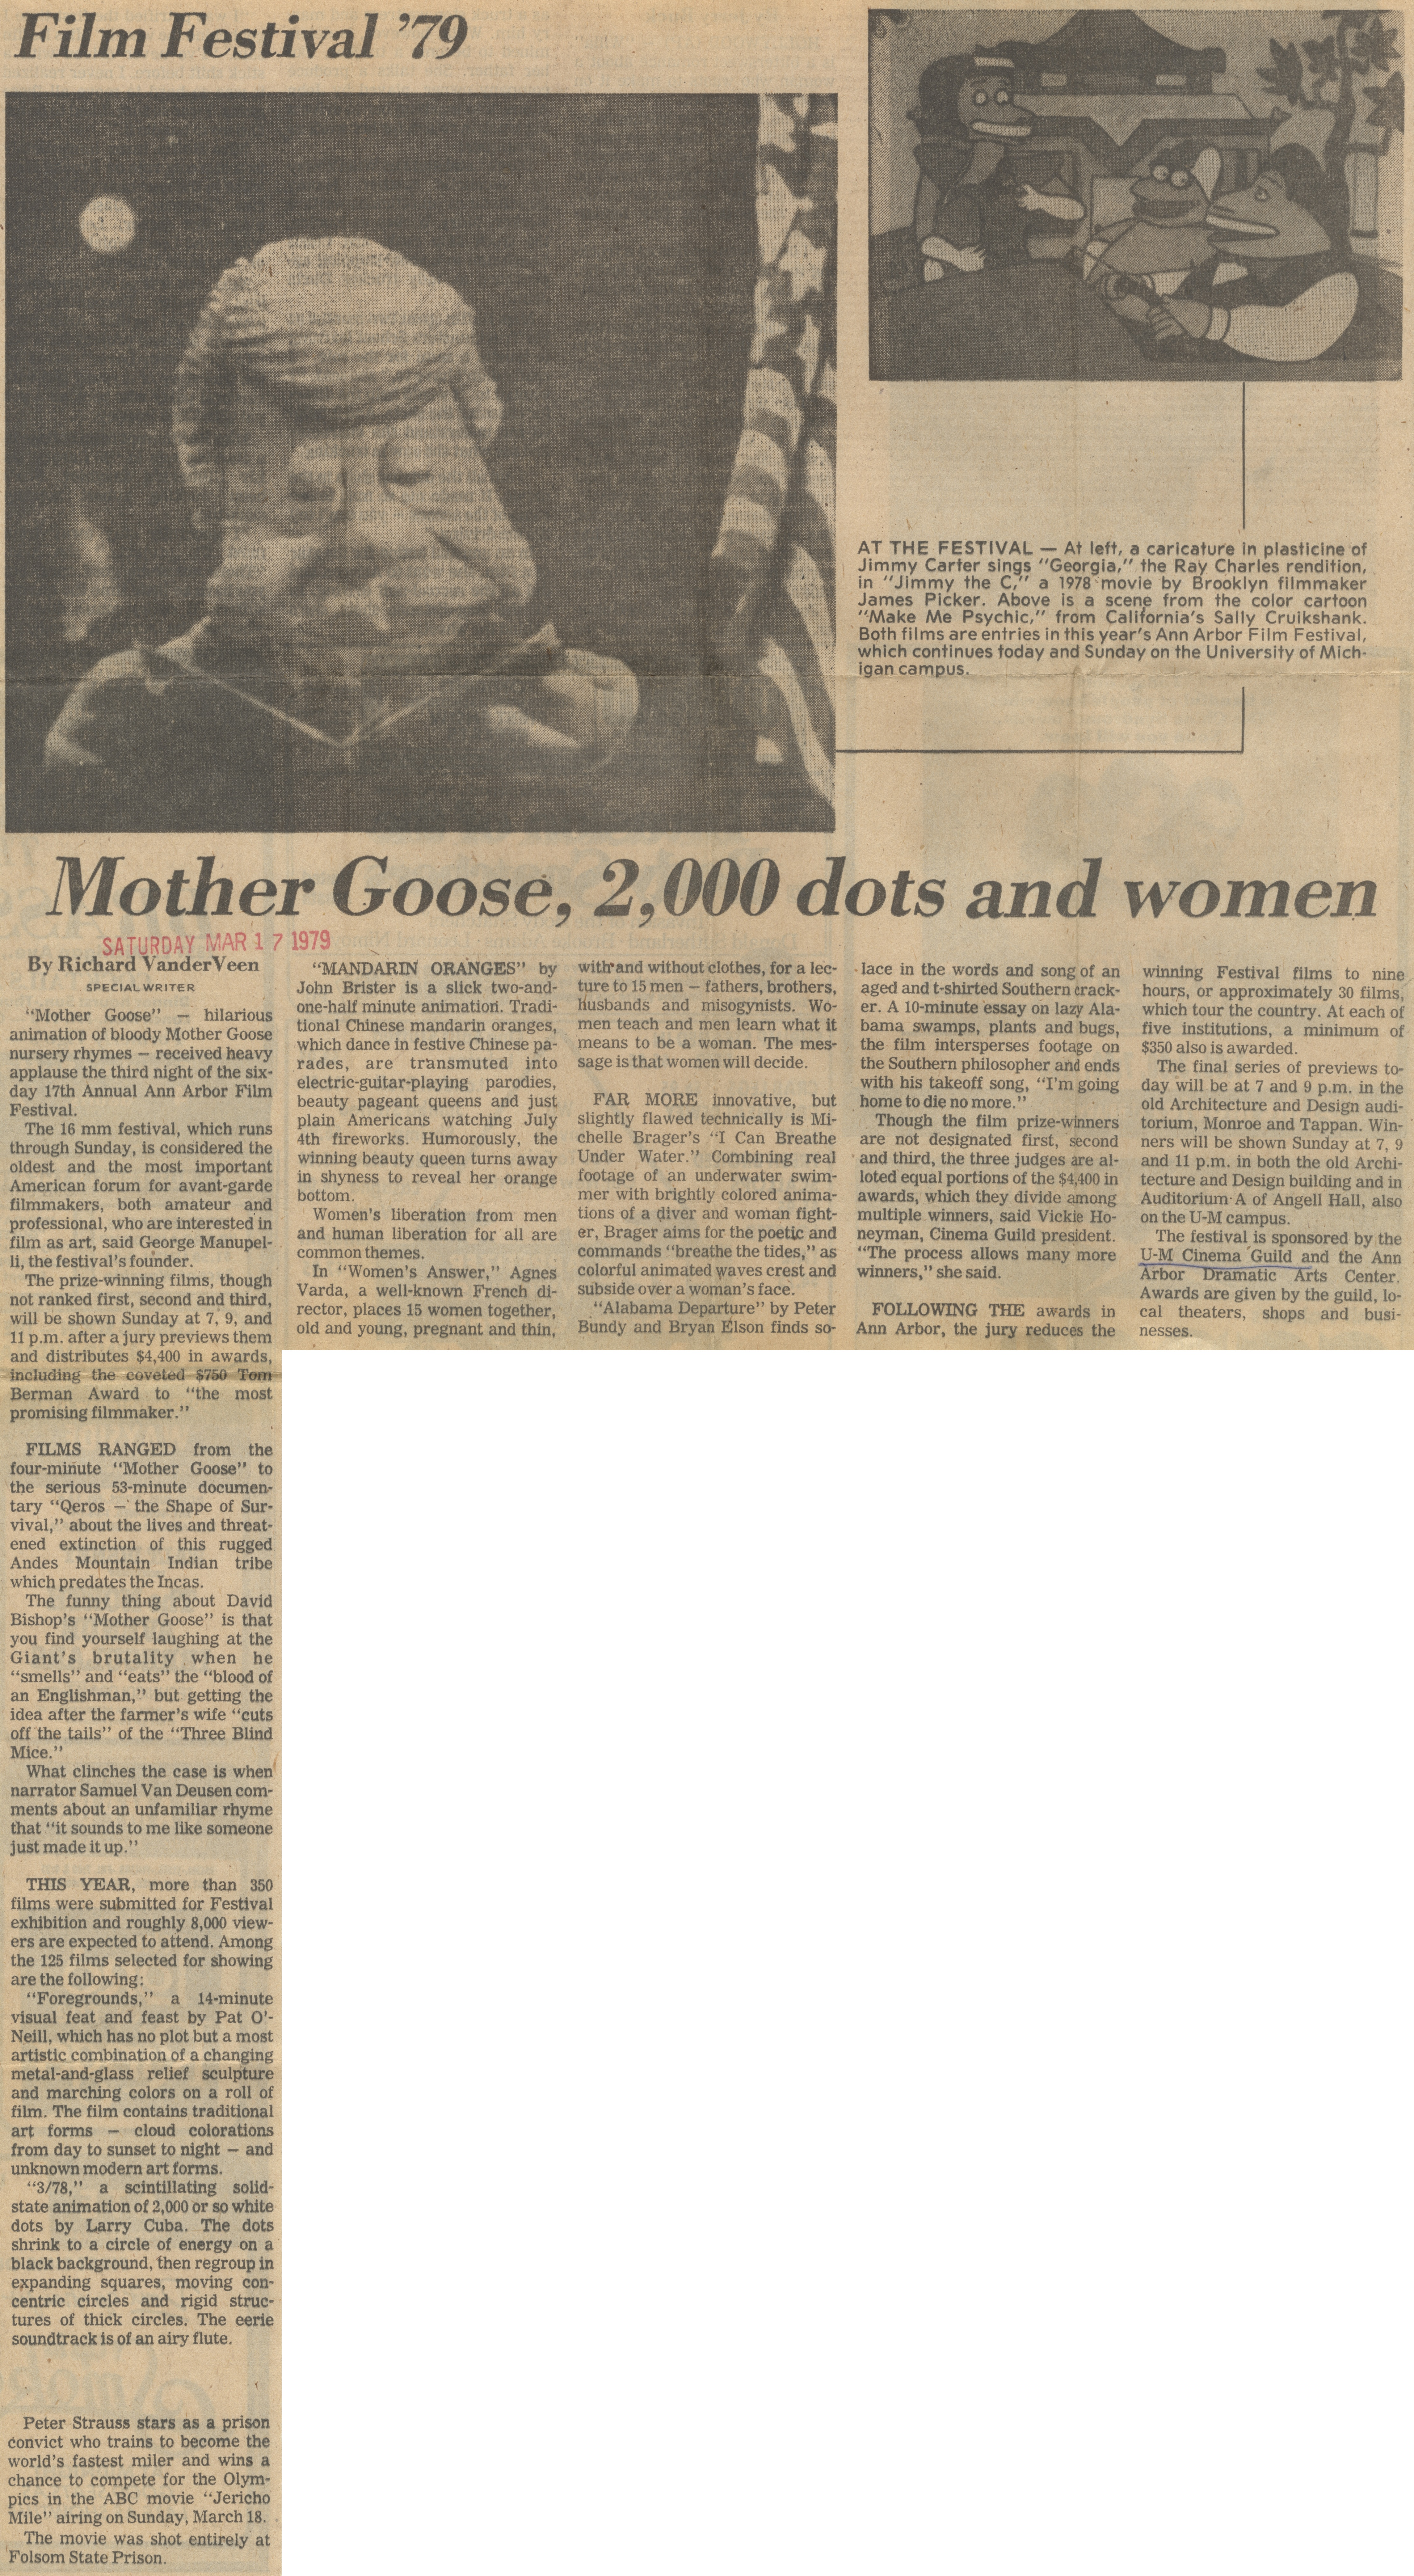 Film Festival '79: Mother Goose, 2,000 dots and women image